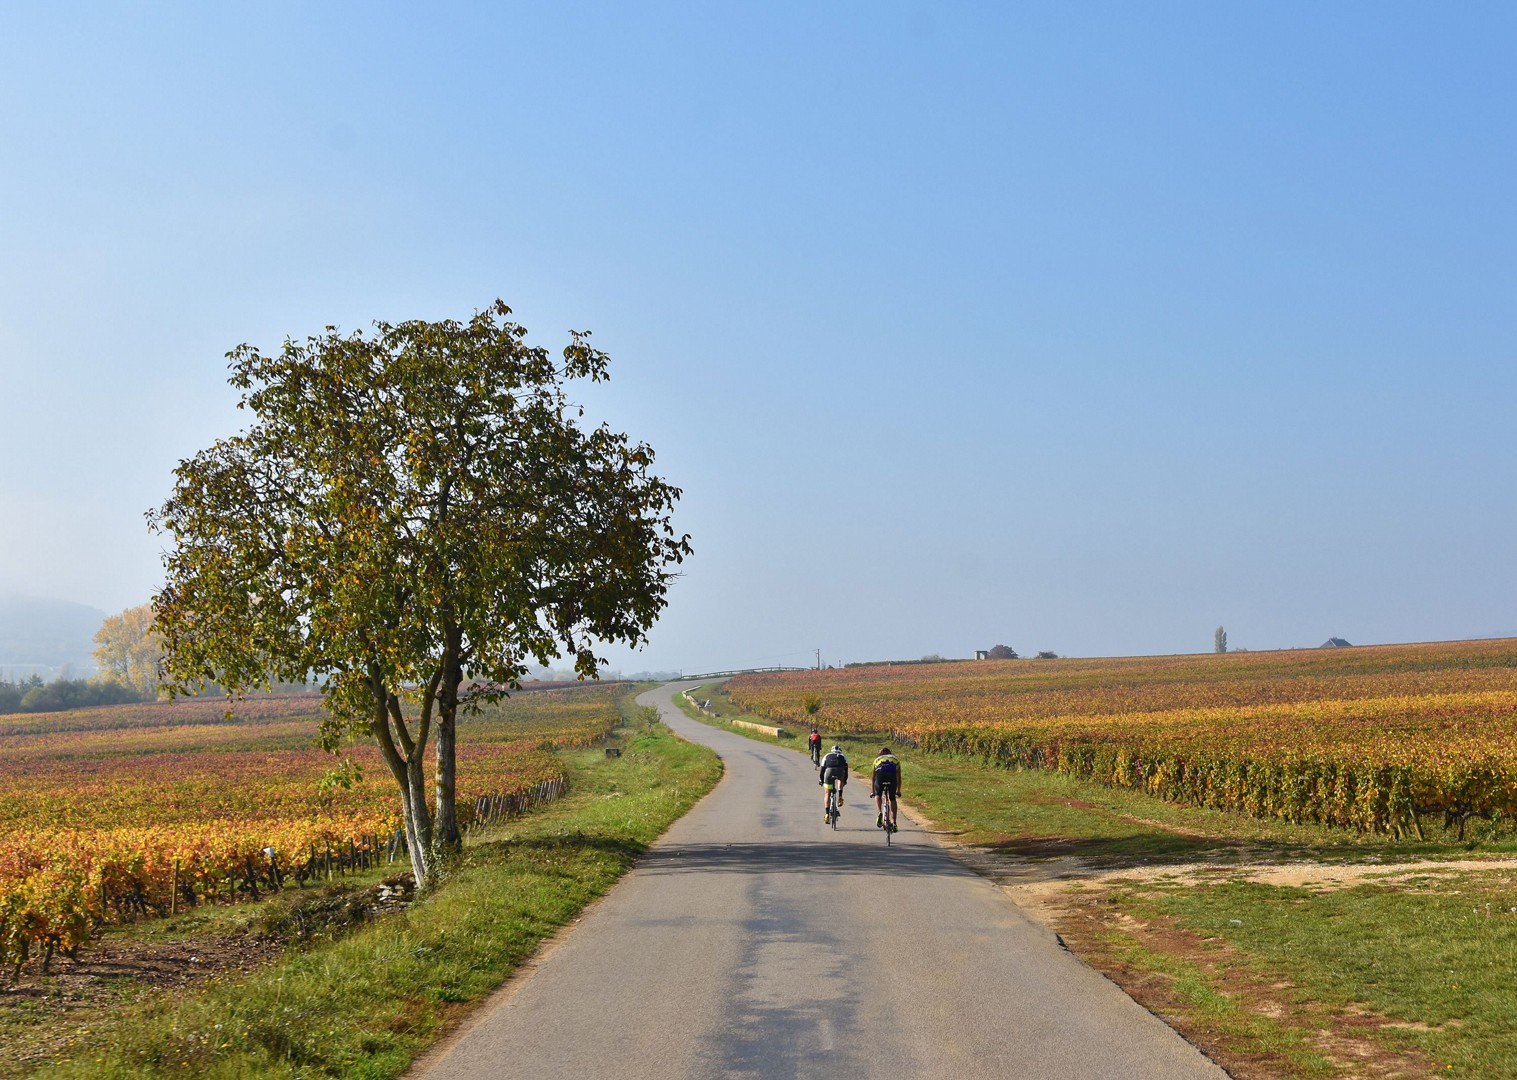 wine-regions-of-france-on-bike-skedaddle.jpg - NEW! France - Alsace, Burgundy and Beaujolais - Road Cycling